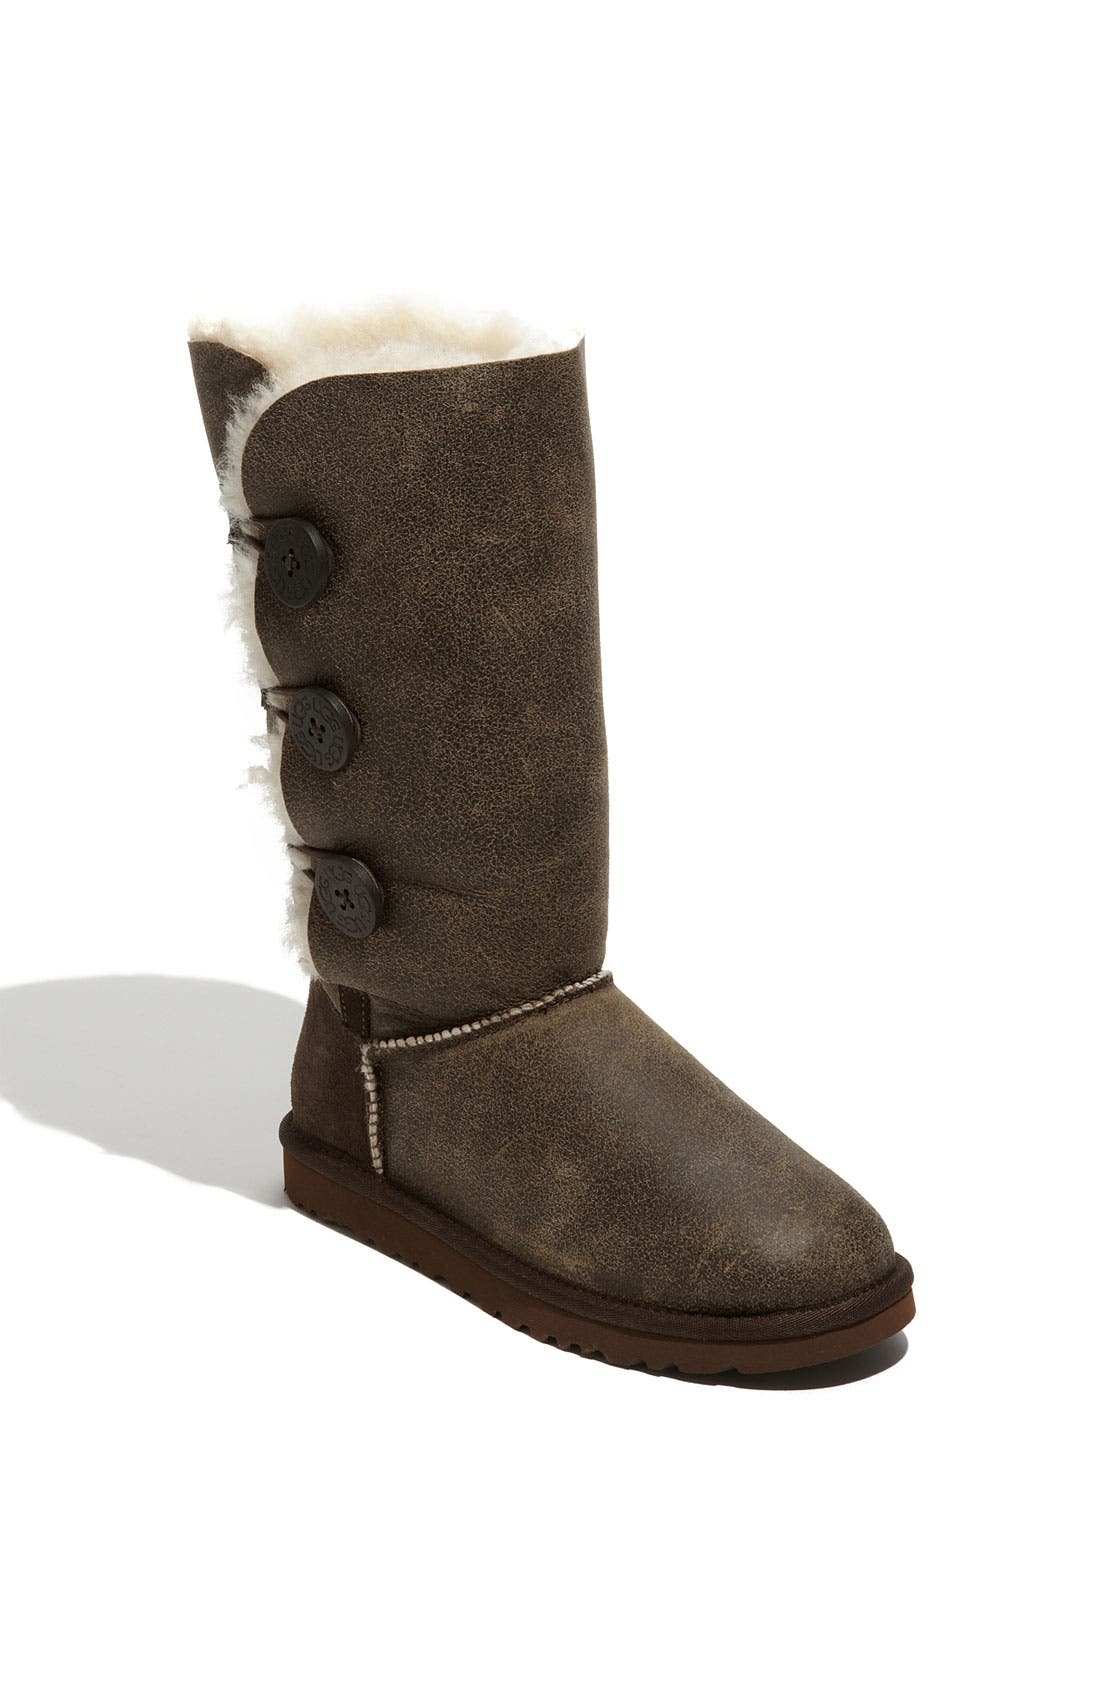 Alternate Image 1 Selected - UGG® Australia 'Bailey Button Triplet' Boot (Bomber) (Women)